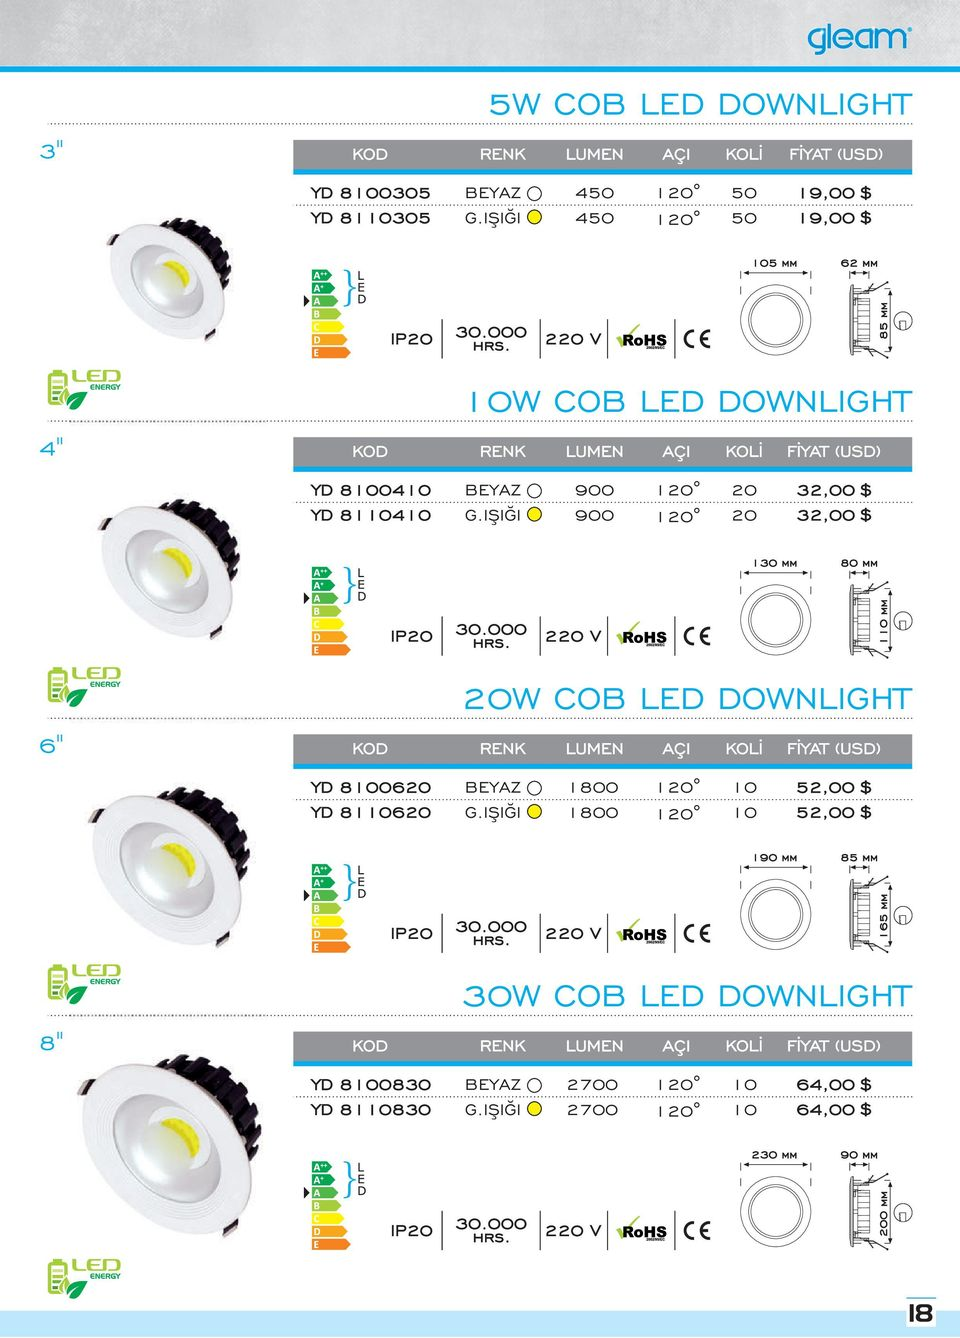 COB LED DOWNLIGHT YD 86 YD 816 1800 1800 1 1 52,00 52,00 190 mm 85 mm 165 mm 8''